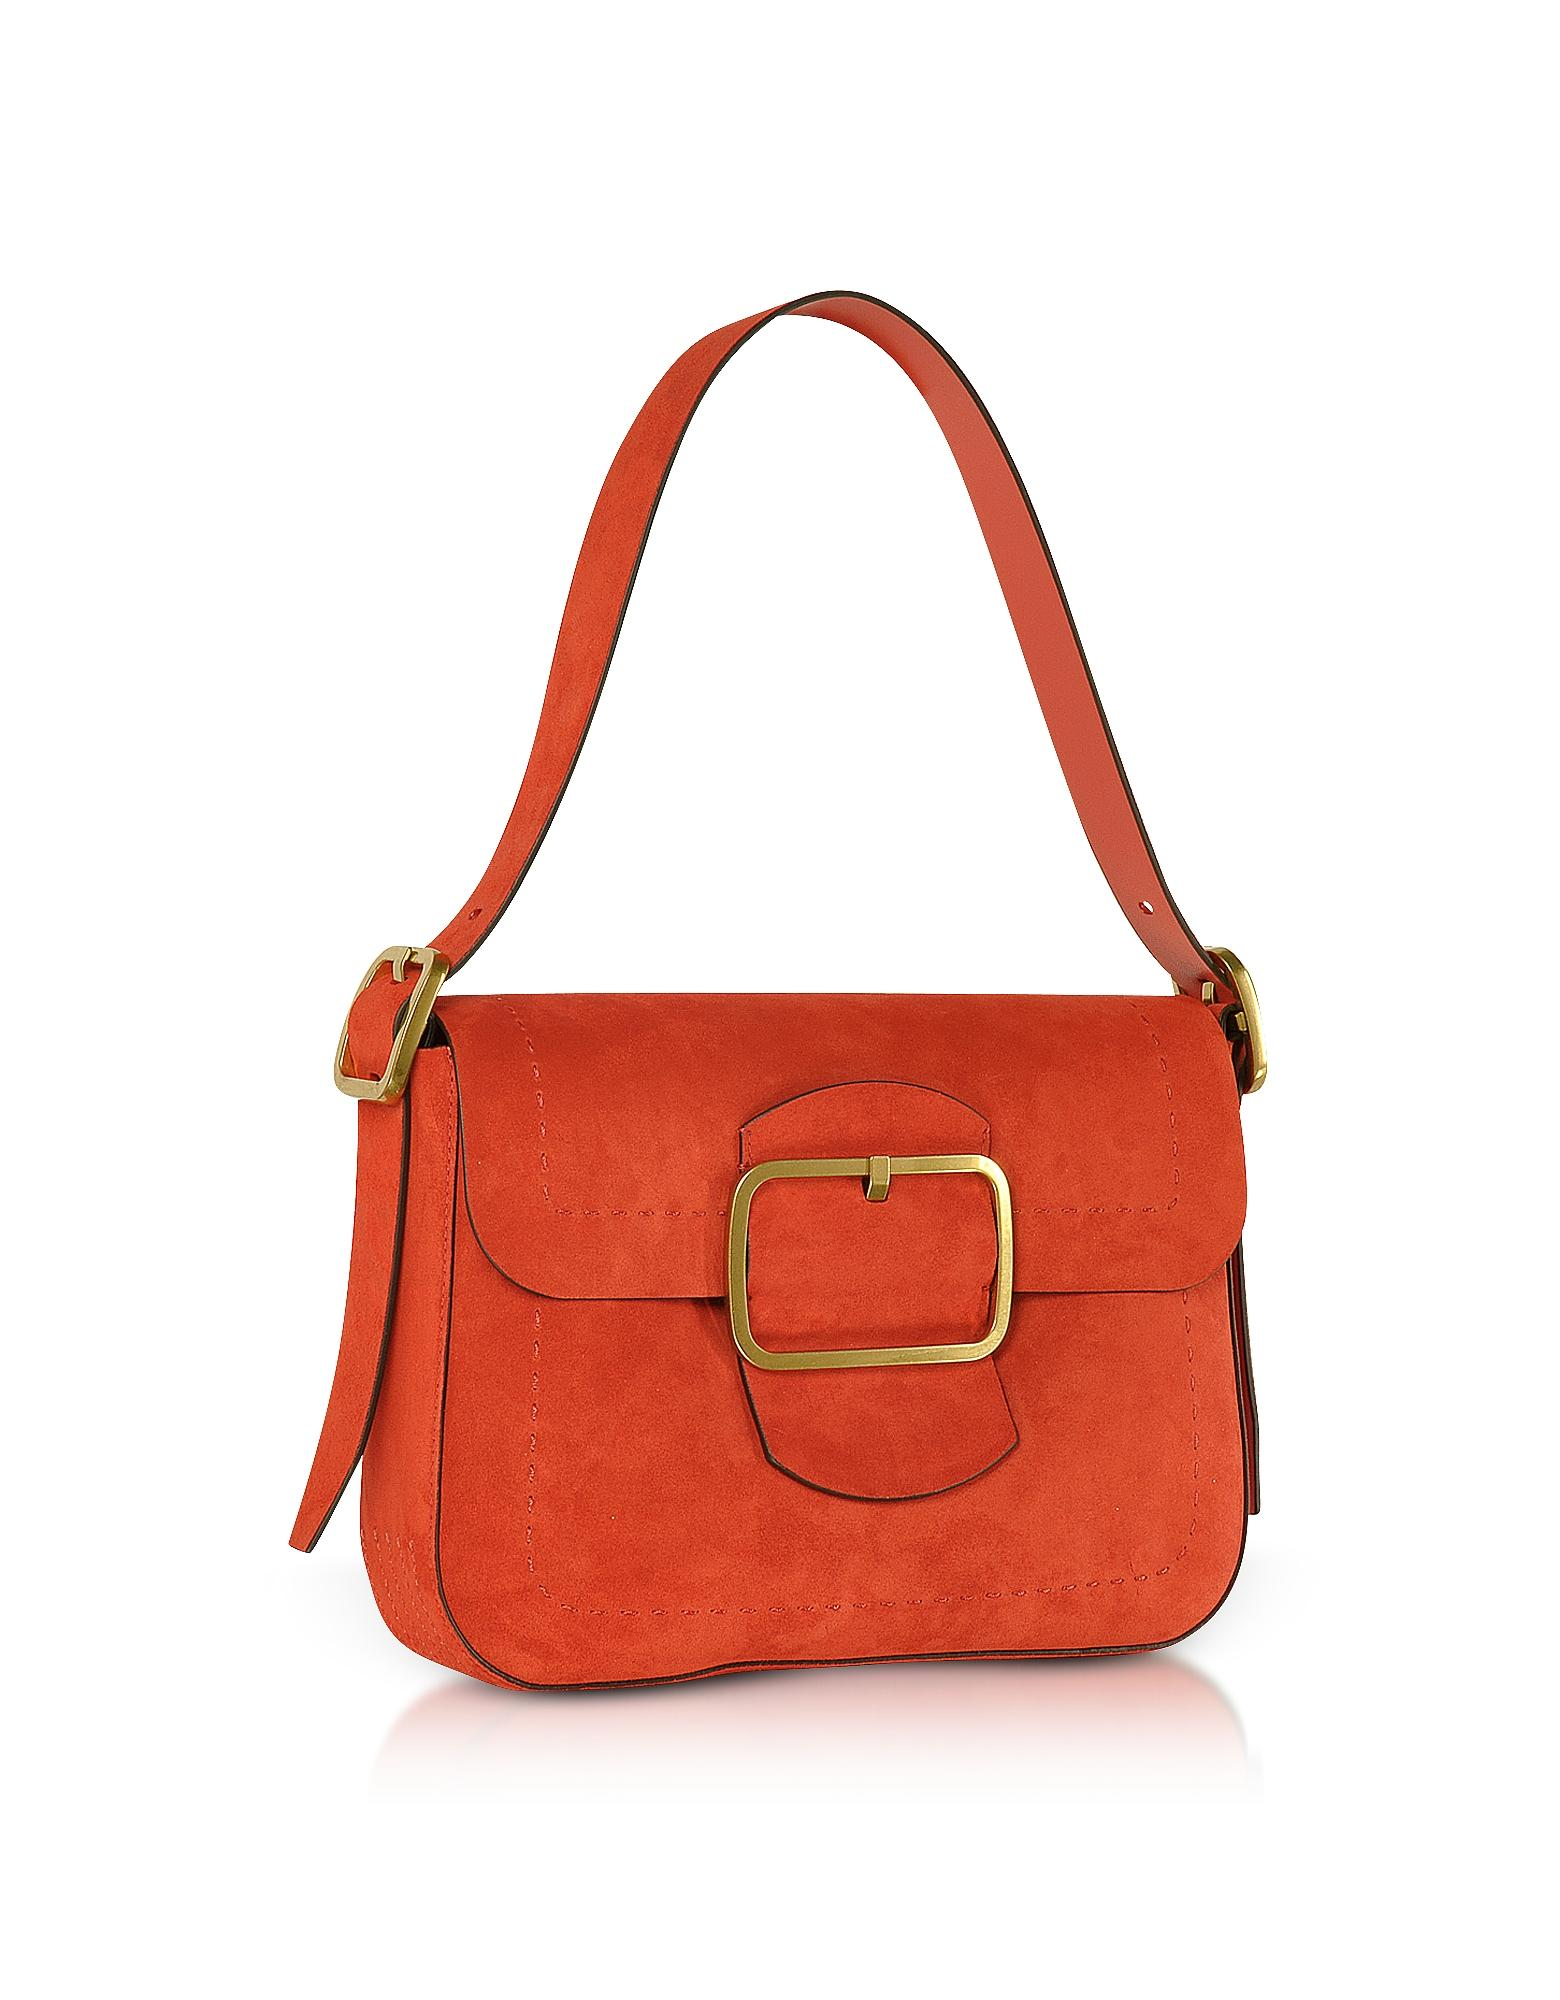 ff801946b2c3 Tory Burch Sawyer Red Suede Shoulder Bag in Red - Lyst